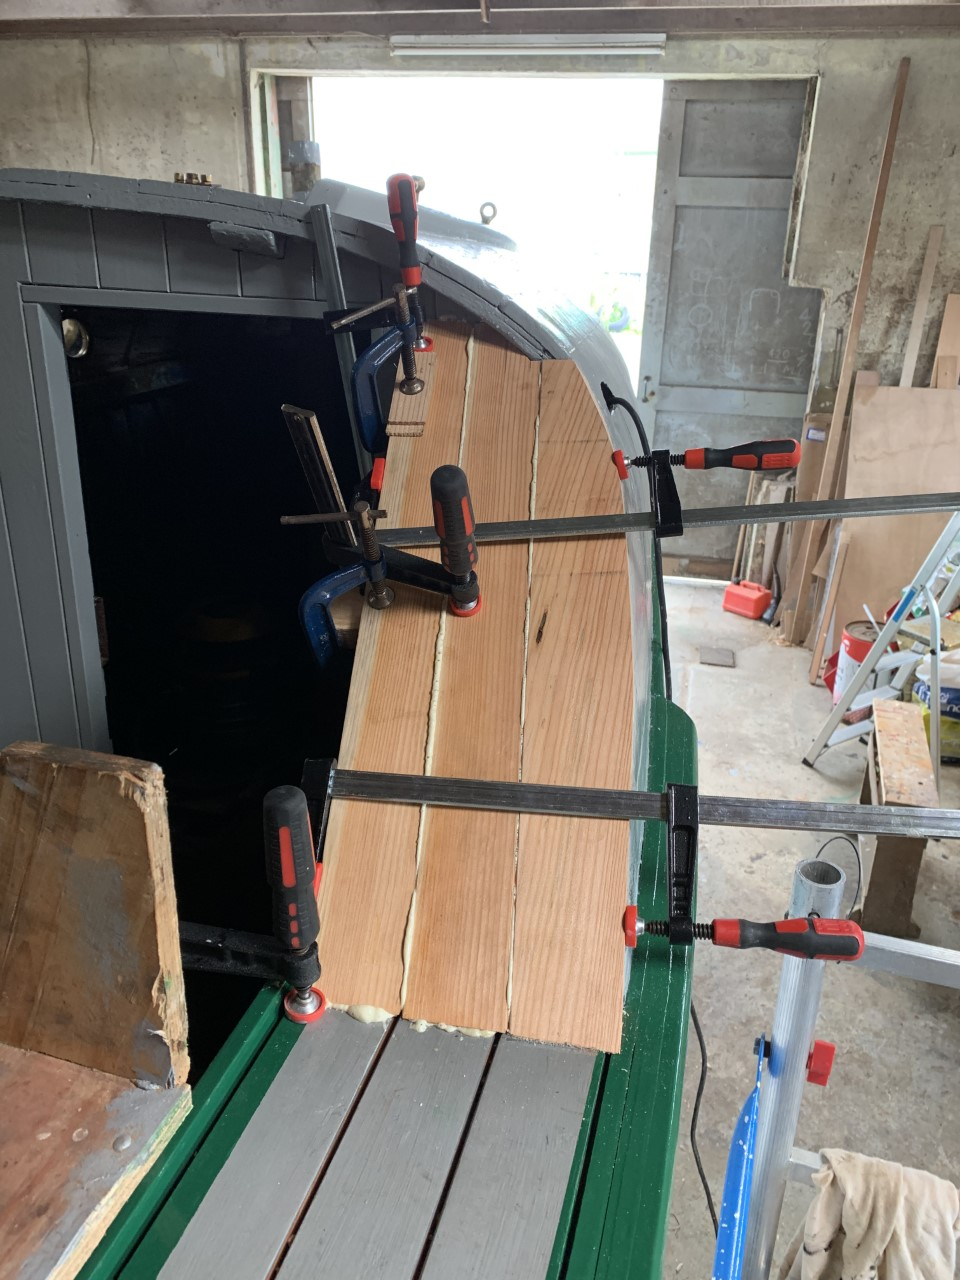 Finishing touches of the professional shipwrights conservation stage 2 work July